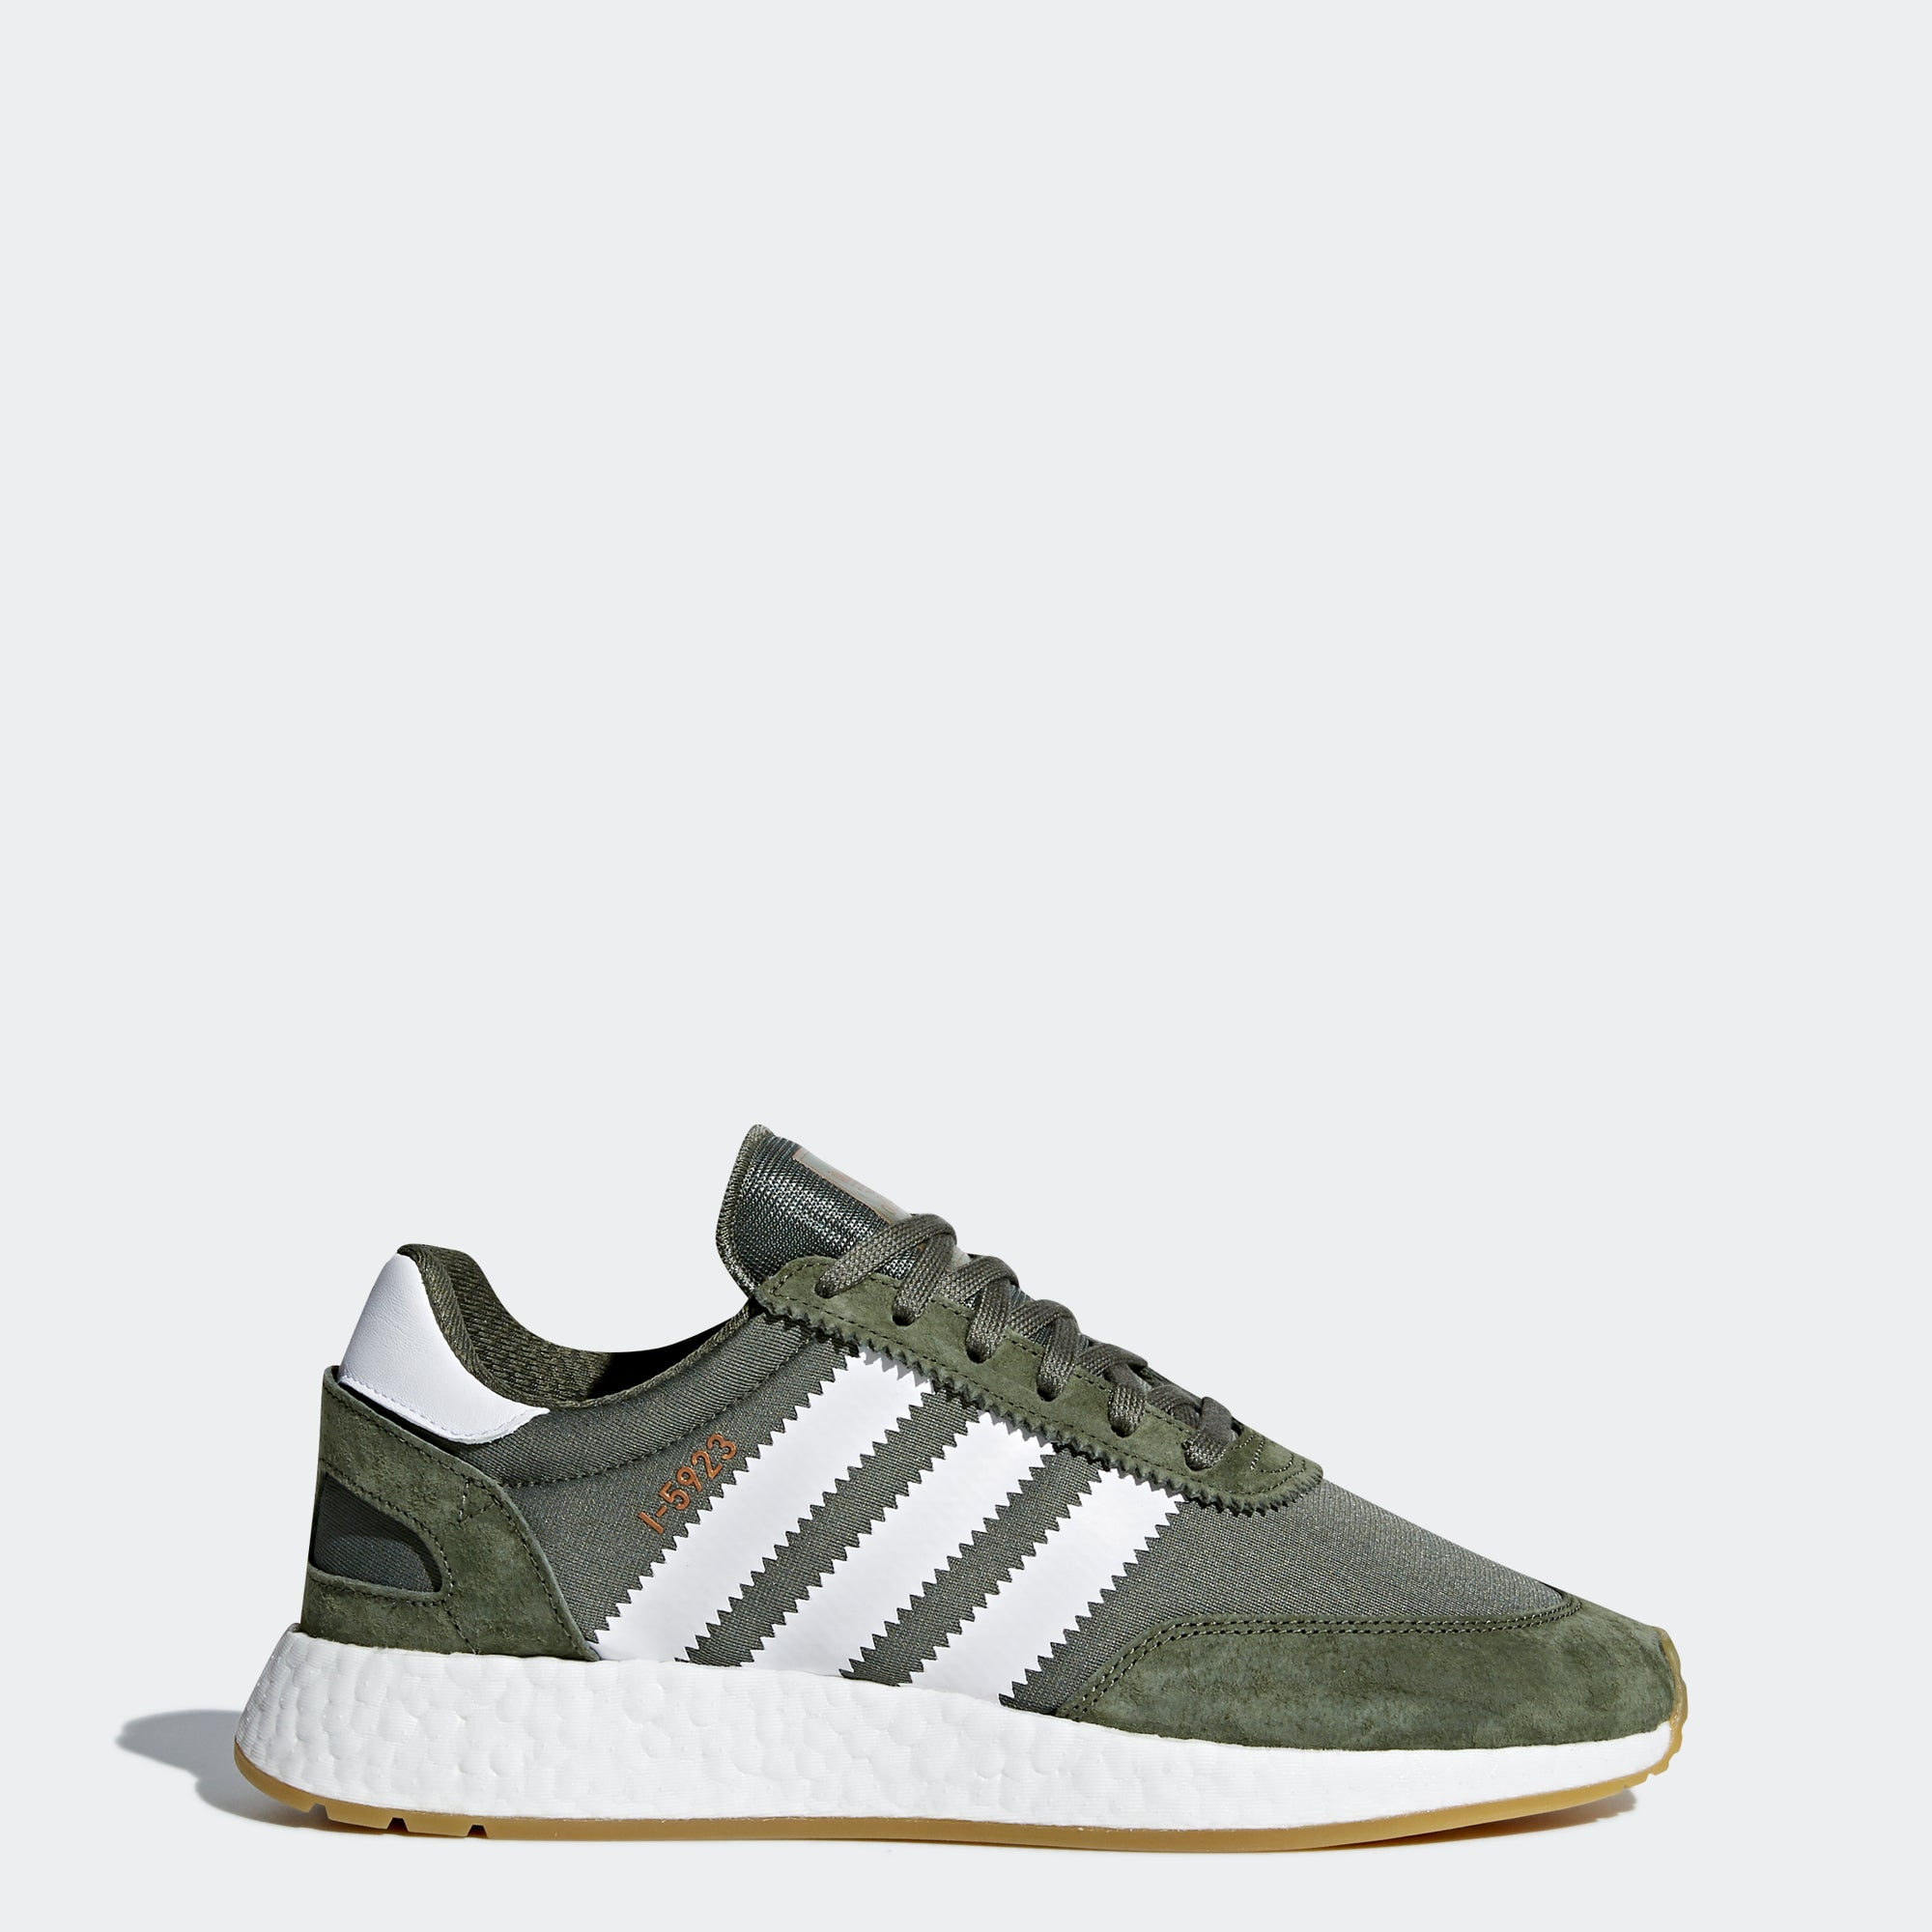 timeless design 0d7e9 f8bd8 Men s adidas Originals I-5923 Shoes Base Green